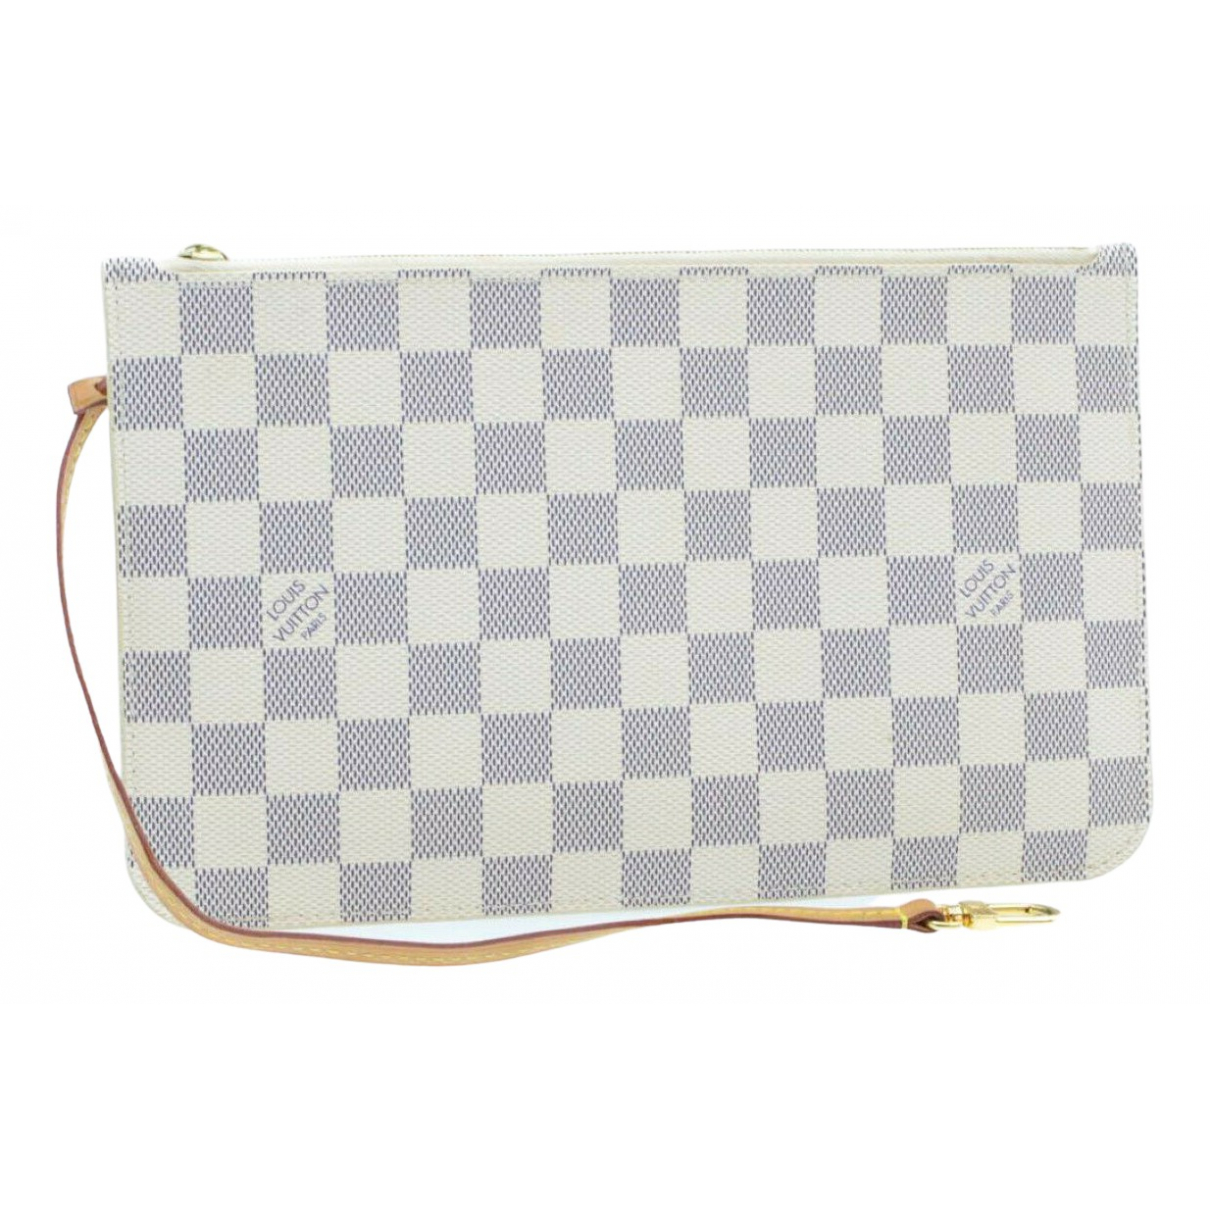 Louis Vuitton Neverfull Blue Cloth Clutch bag for Women N